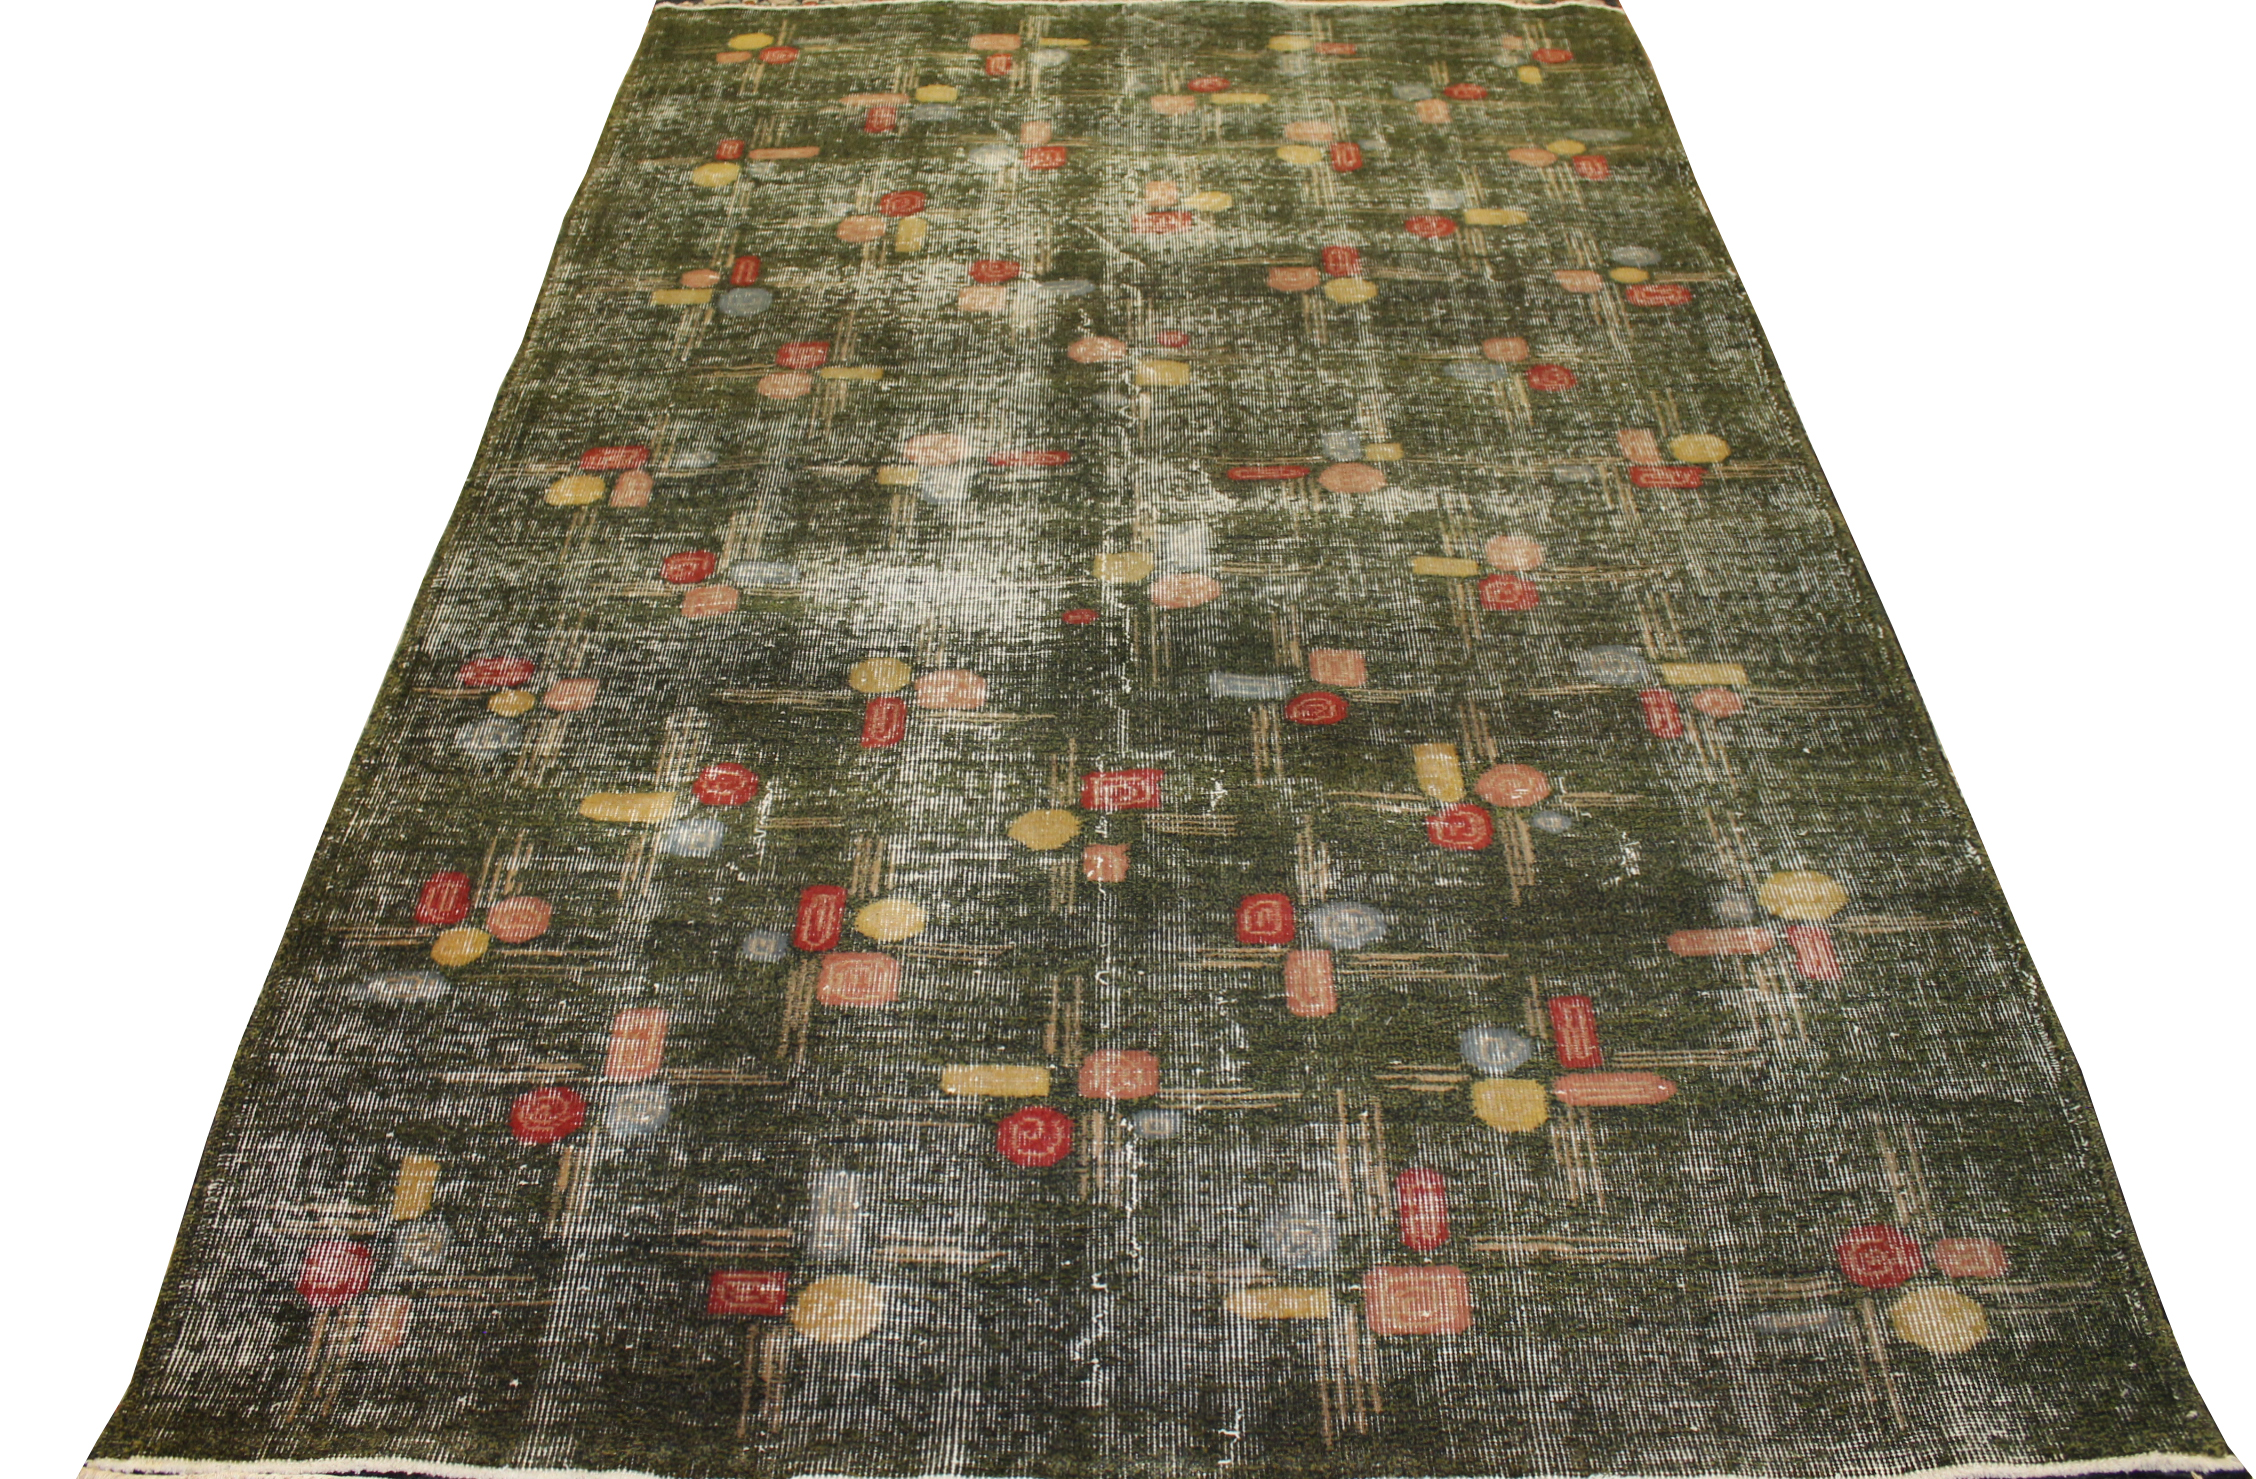 5x7/8 Contemporary Hand Knotted Wool Area Rug - MR023453